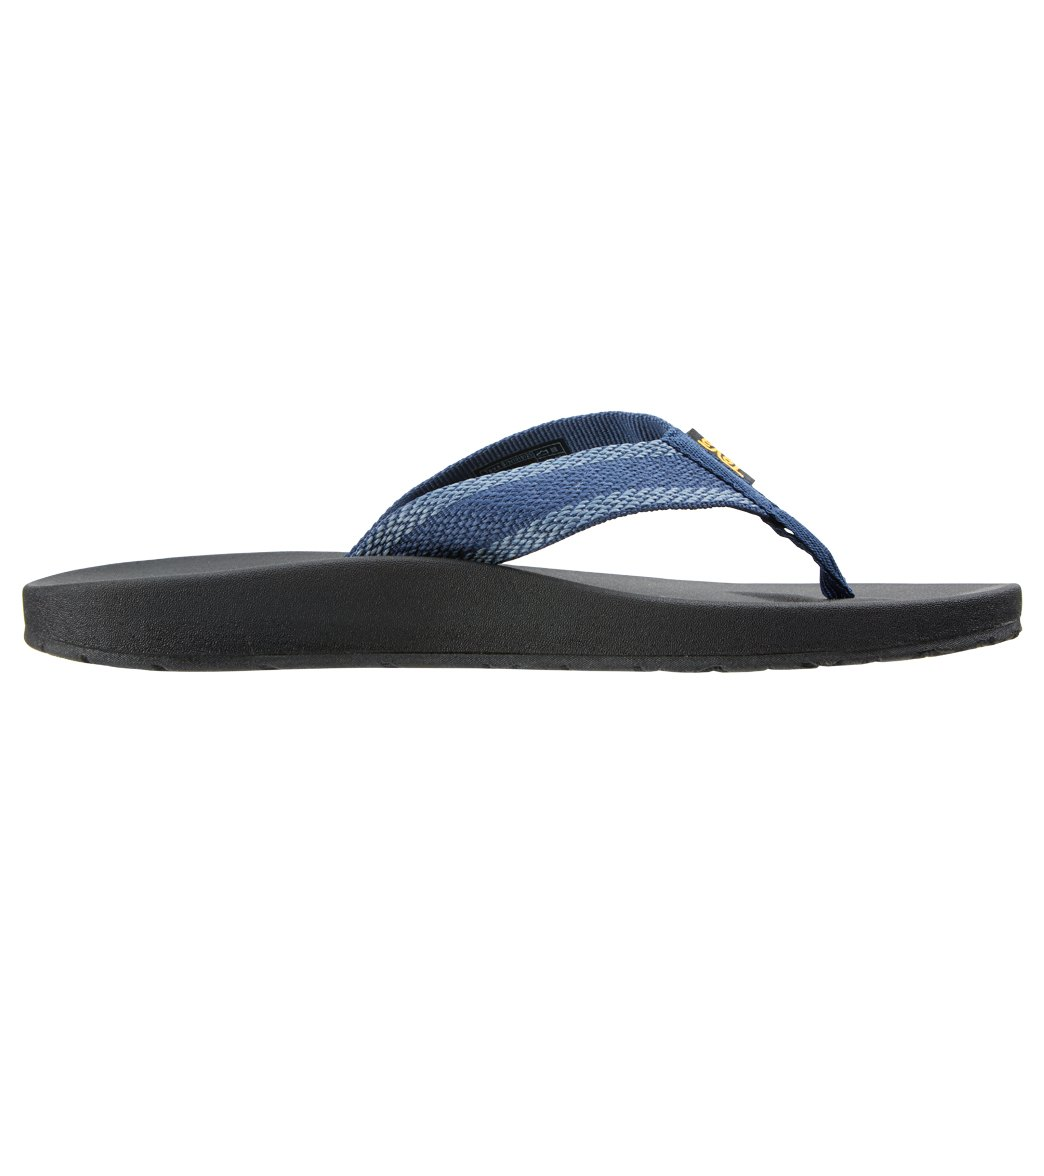 e3e09c569e74 Teva Men s Azure Flip Flop at SwimOutlet.com